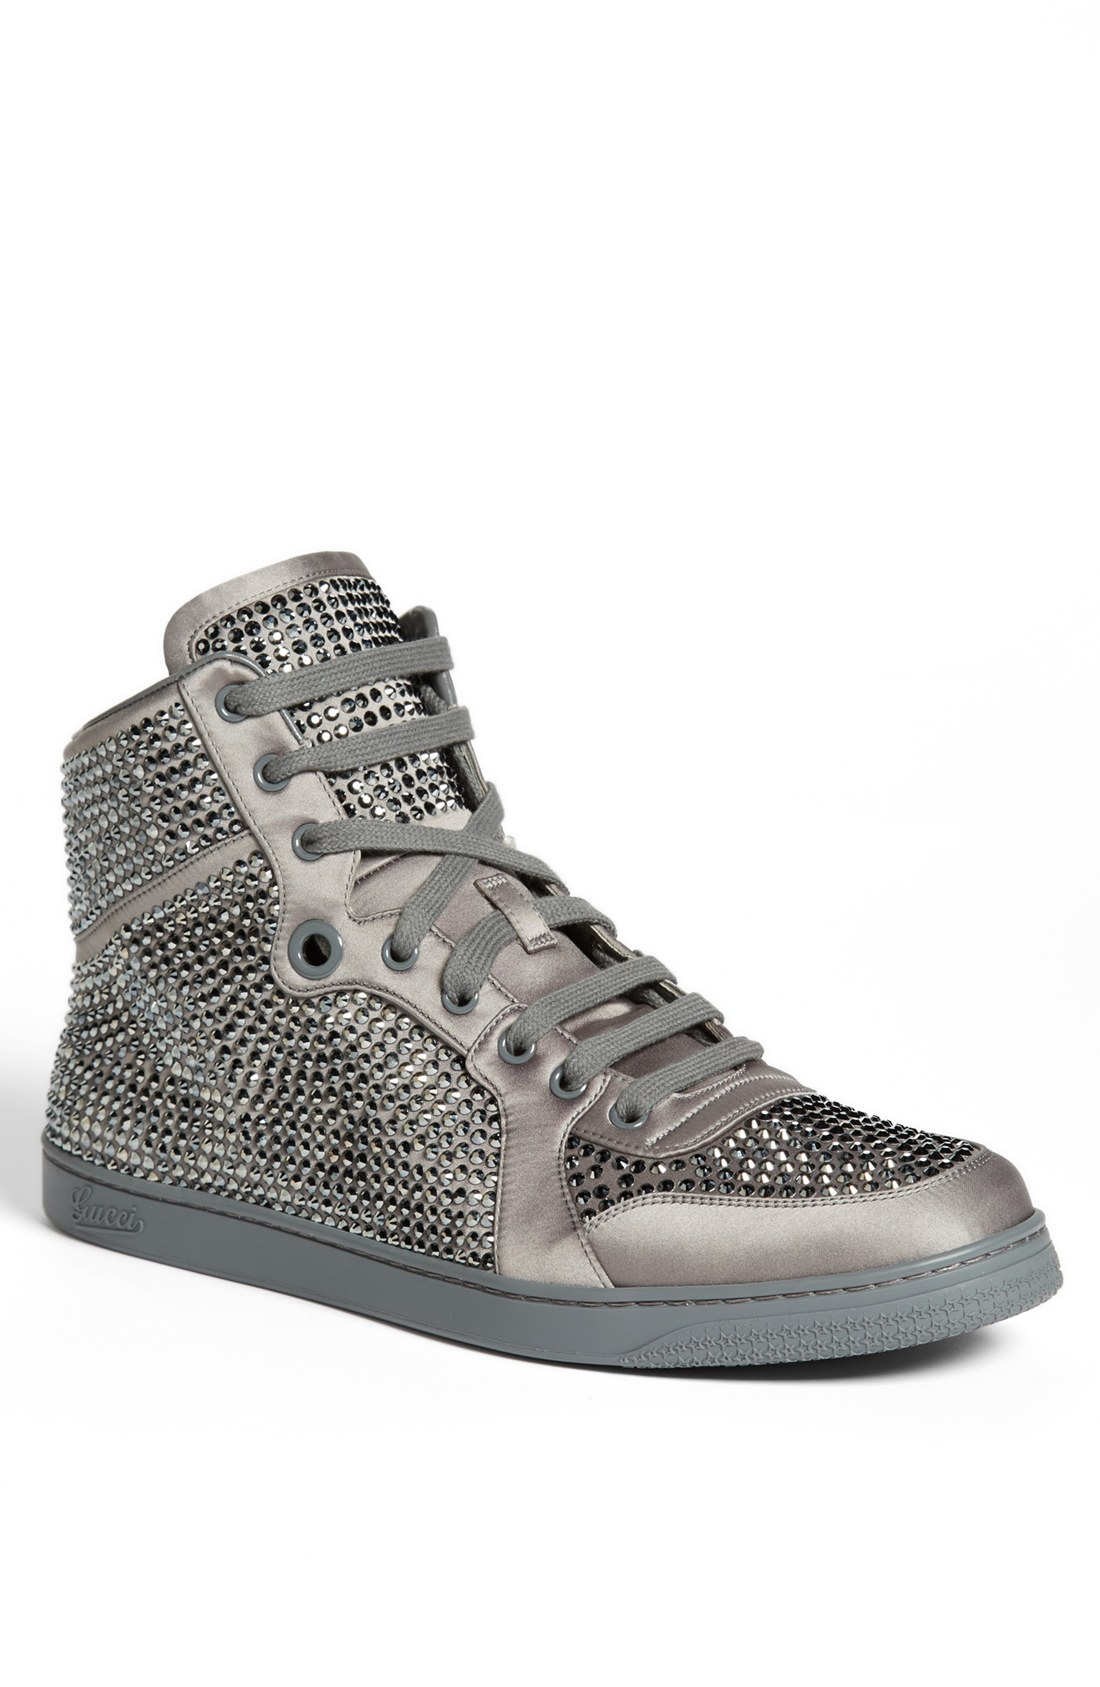 gucci coda crystal high top sneaker in gray for men grey. Black Bedroom Furniture Sets. Home Design Ideas